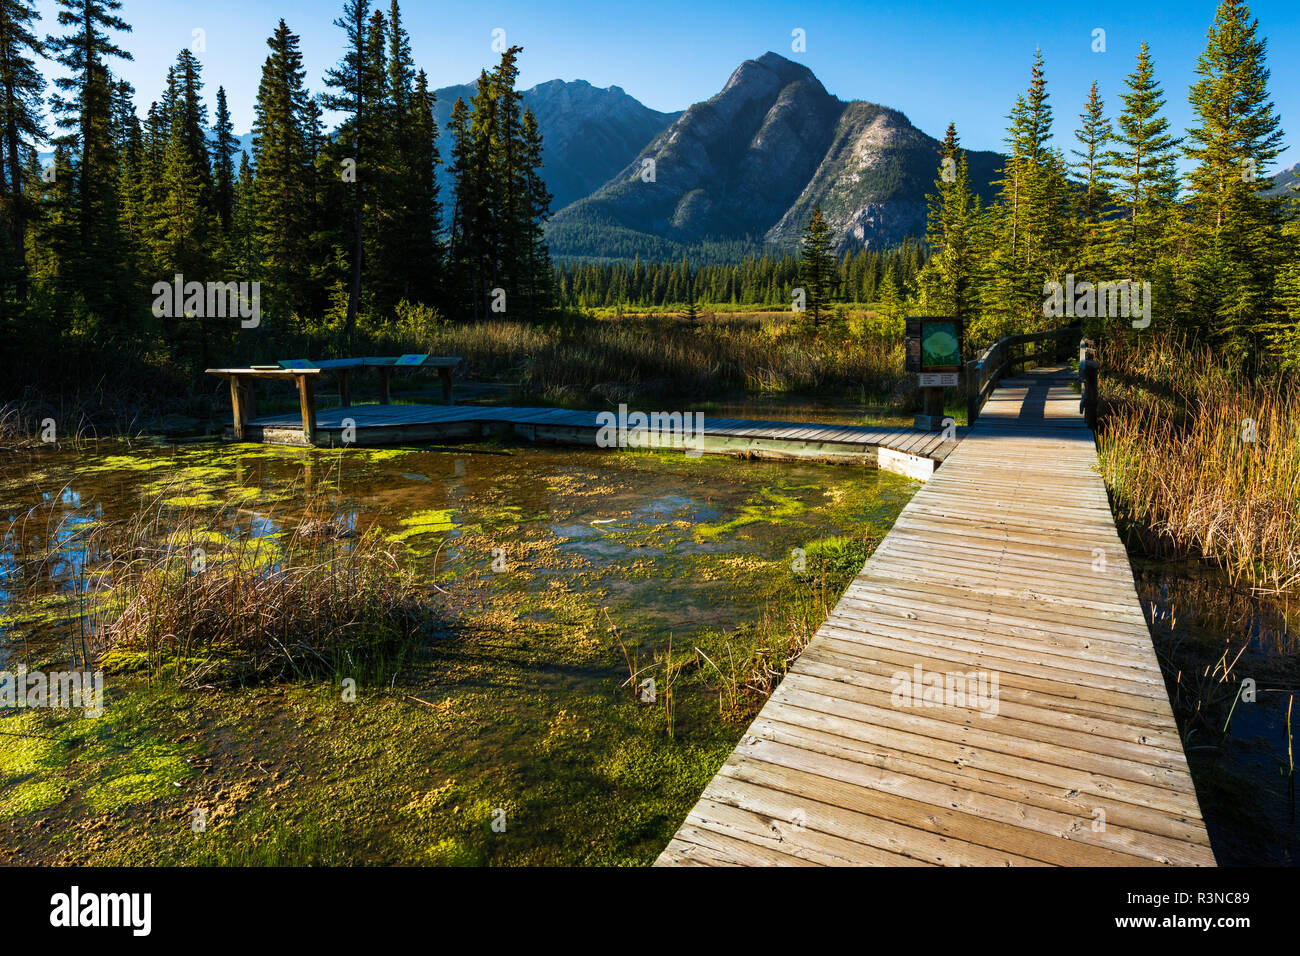 Boardwalk and interpretive signs at Cave and Basin National Historic Site, Banff National Park, Alberta, Canada - Stock Image